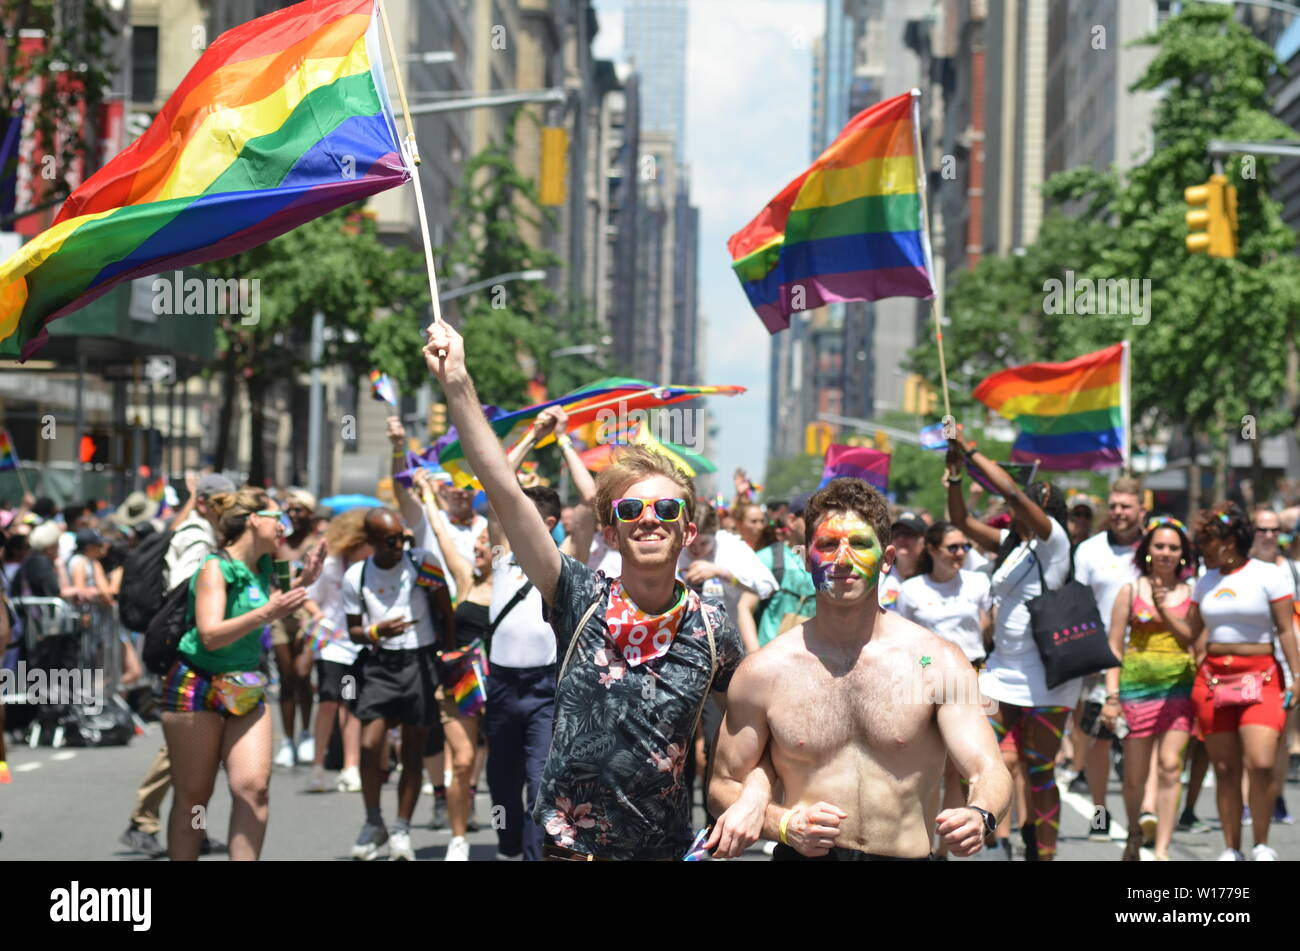 Millions of people from New York and all around the world participated at the World Pride Parade along Fifth Avenue in New York City on June 30, 2019. - Stock Image